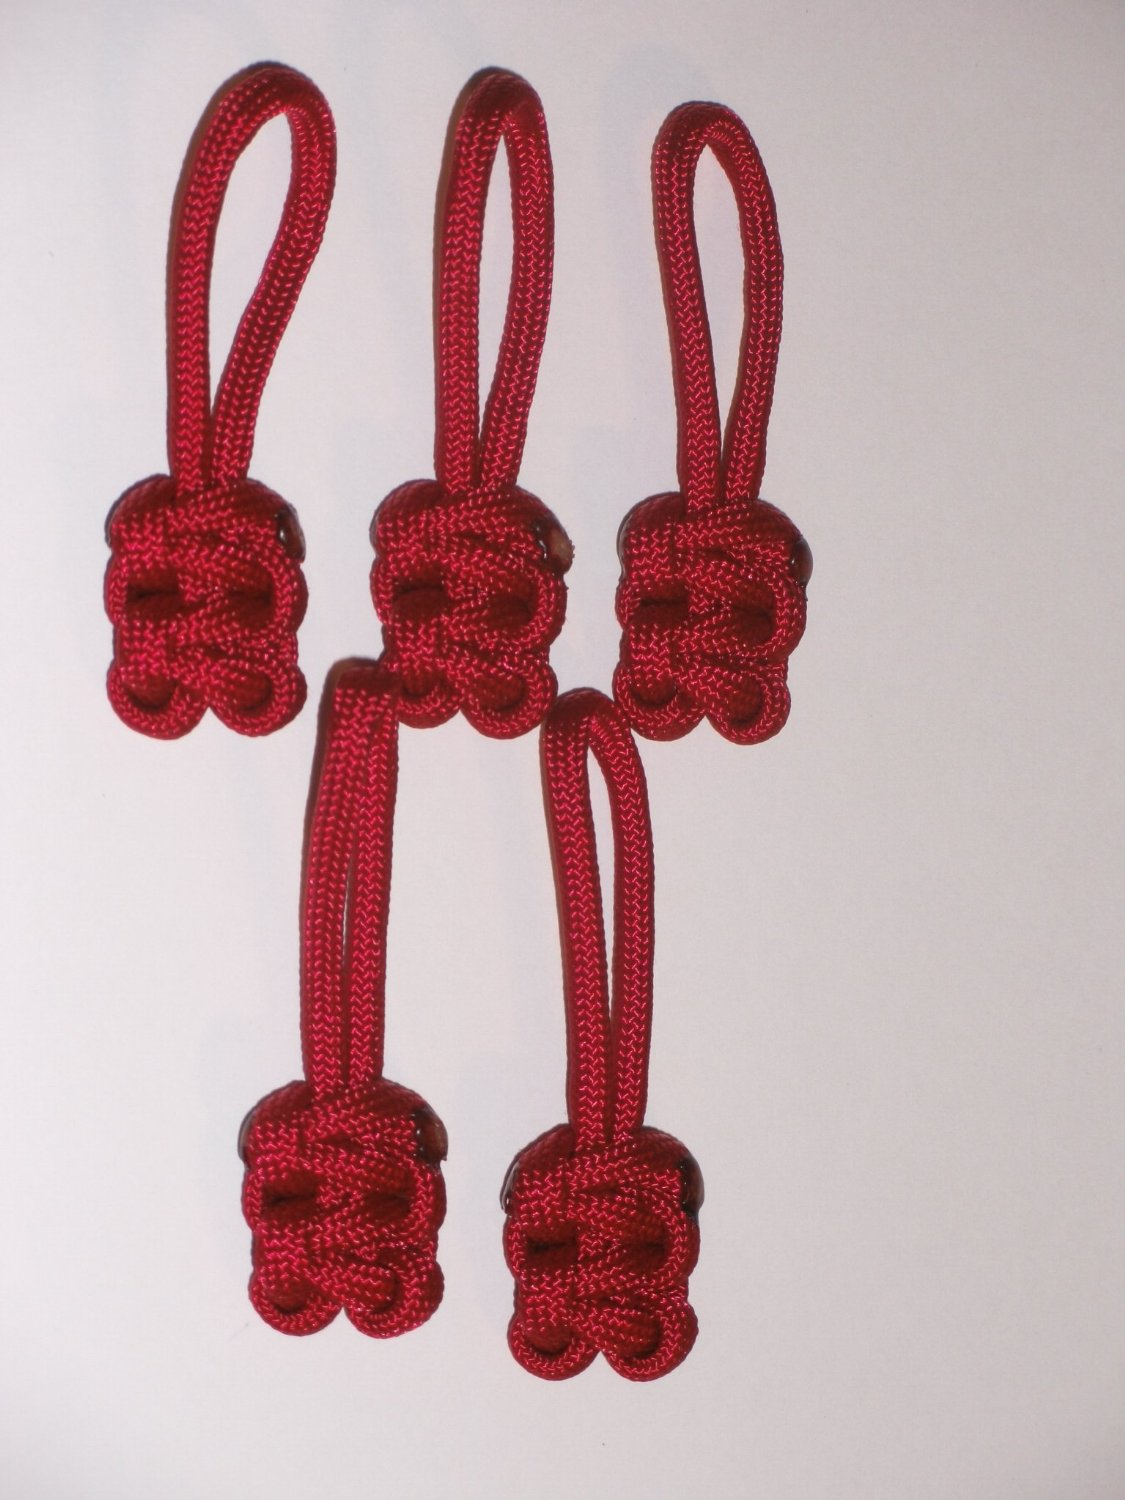 RedVex Paracord Zipper Pulls / Lanyards - Lot of 5 - ~2.5 - Red